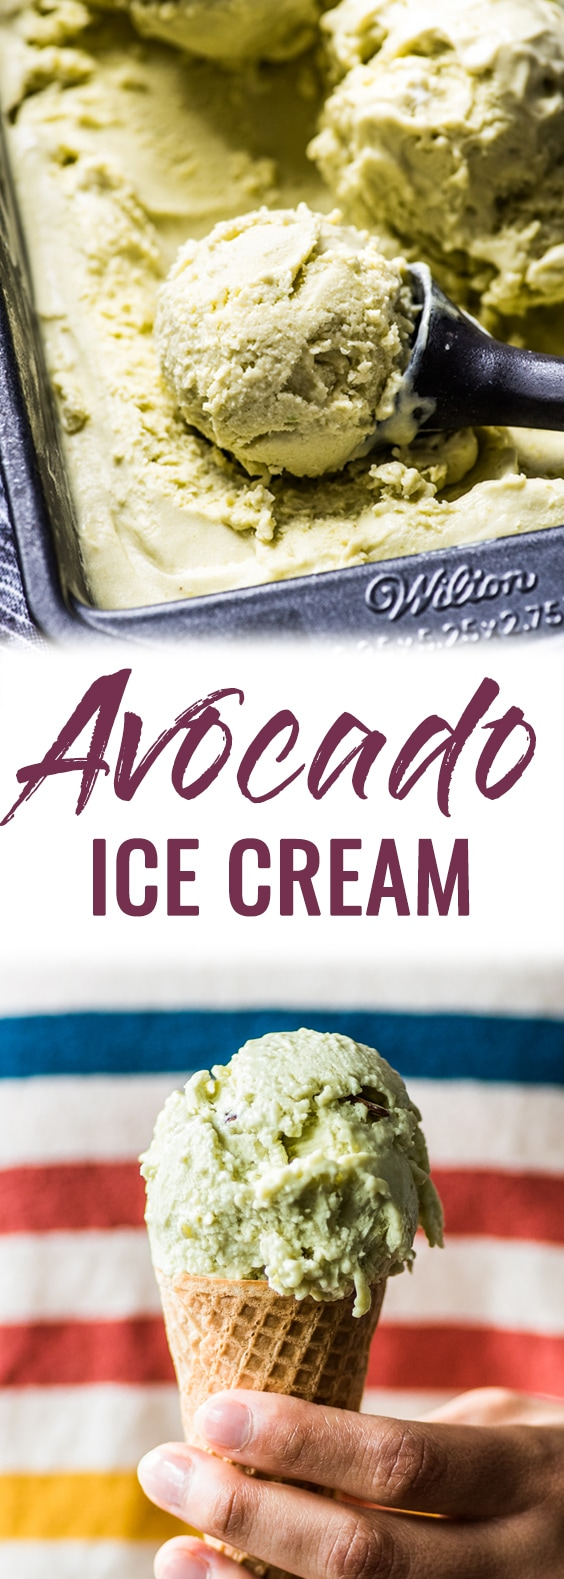 No ice cream maker? No problem! This no churn Avocado Ice Cream is creamy, rich and smooth. All you need is a mixer! (gluten free, vegetarian) #avocado #icecream #nochurn #mexican